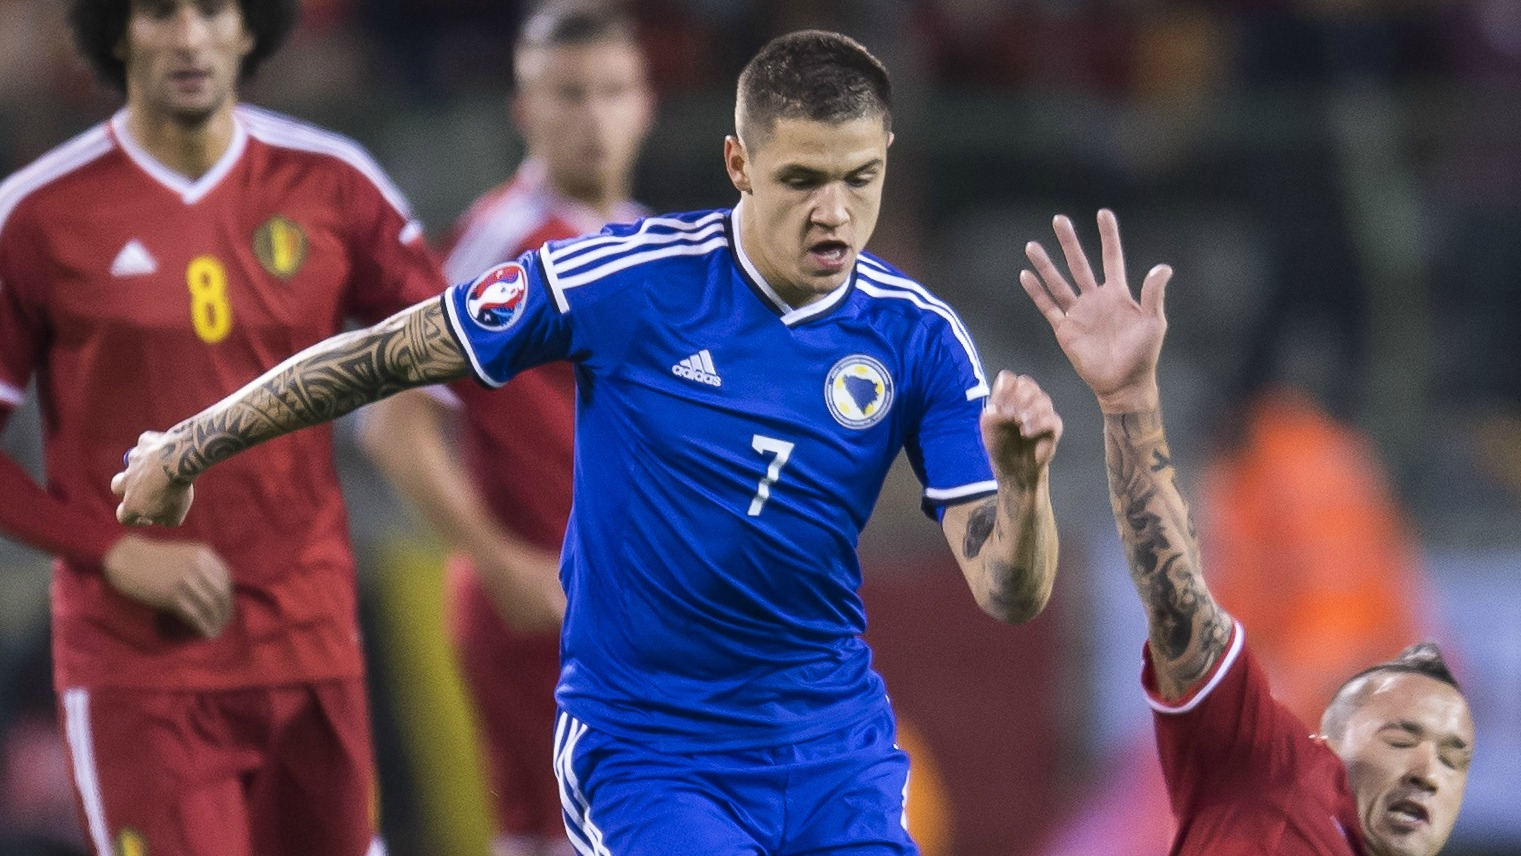 Everton's Mo Besic wore a full kit to cheer on Bosnia-Herzegovina ... from the couch